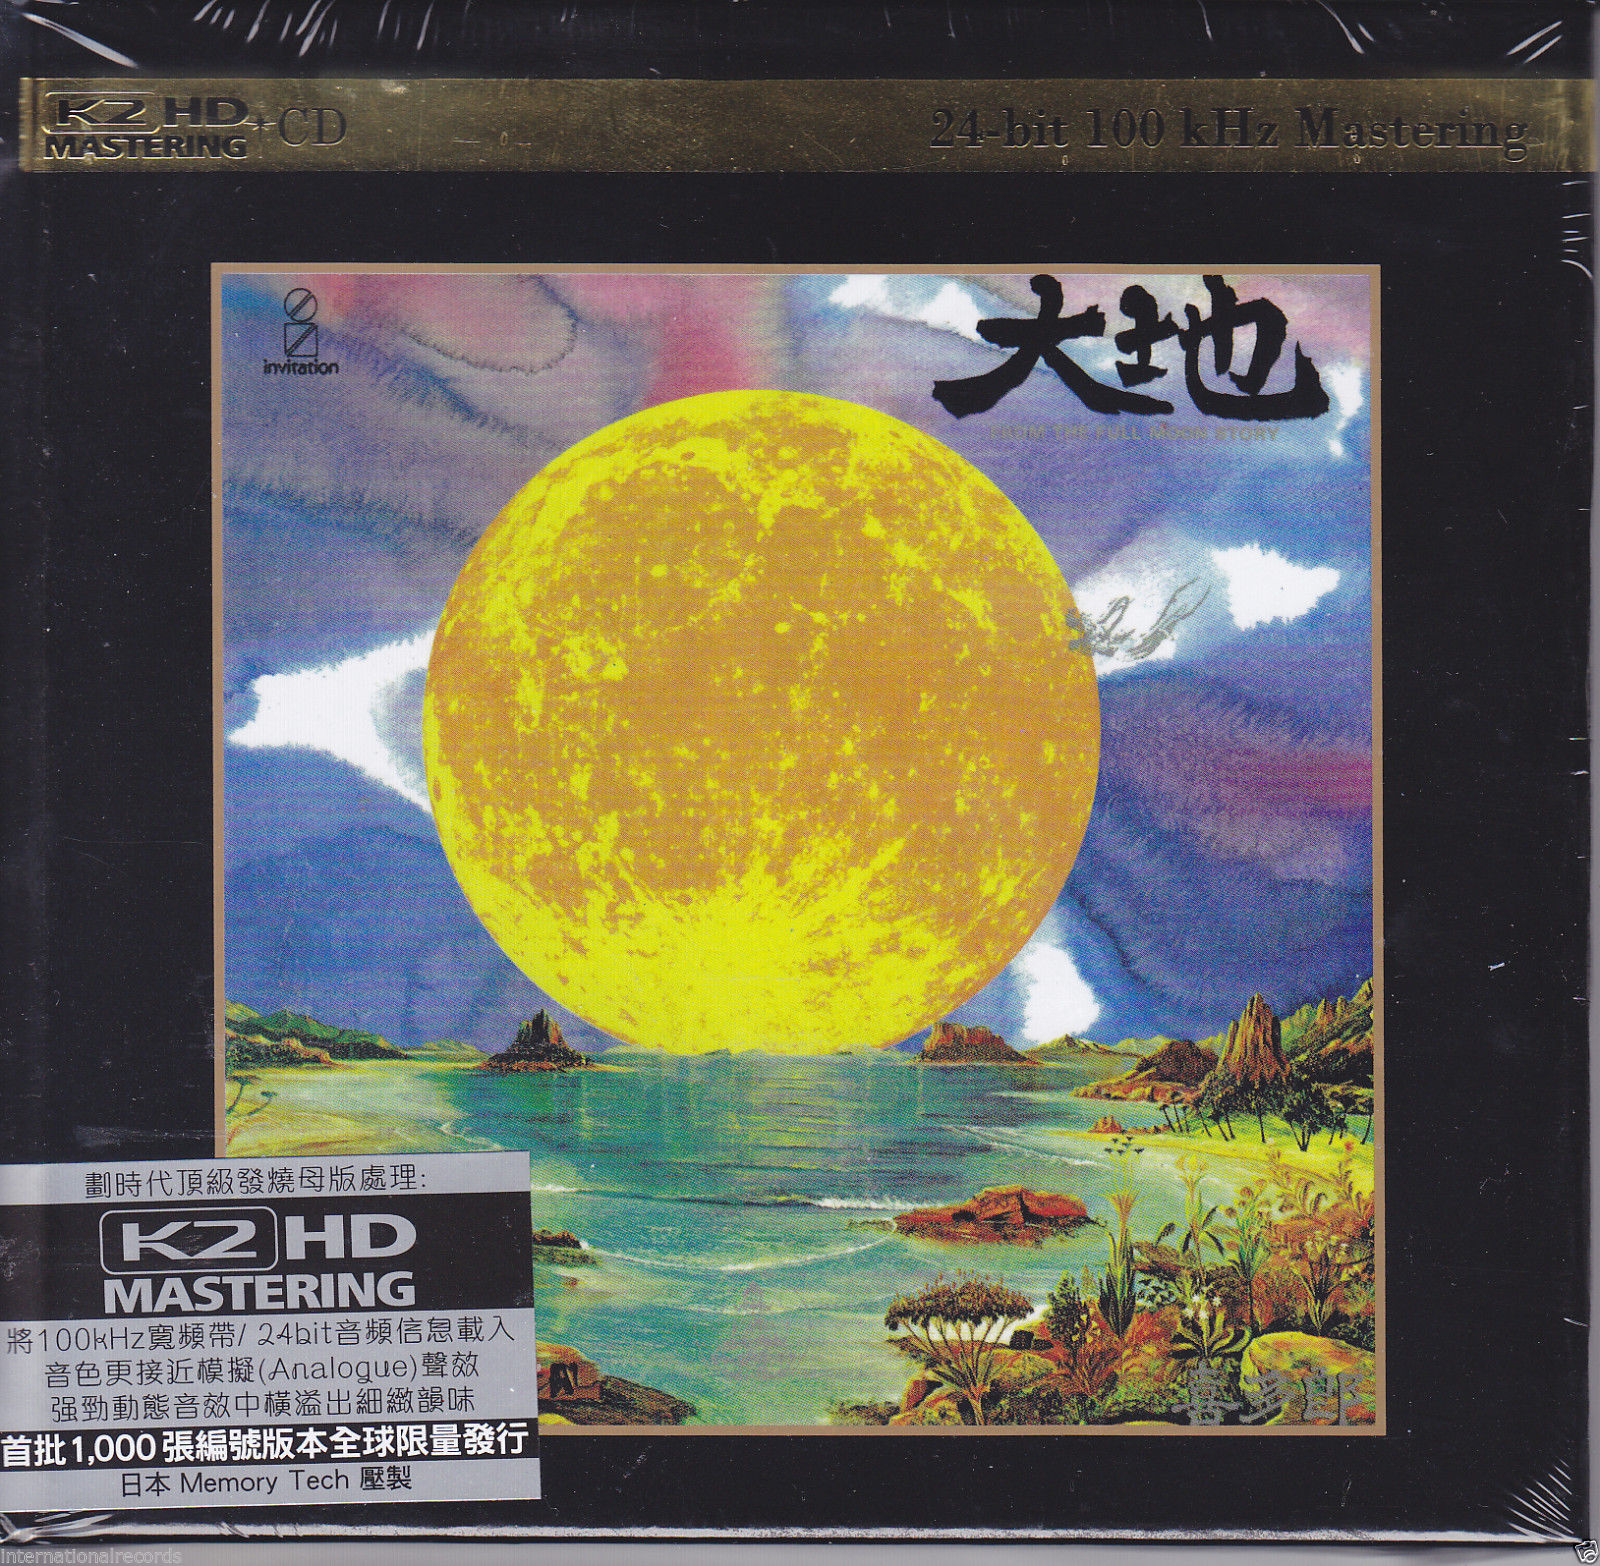 Kitaro - From The Full Moon Story [Japan K2HD CD]